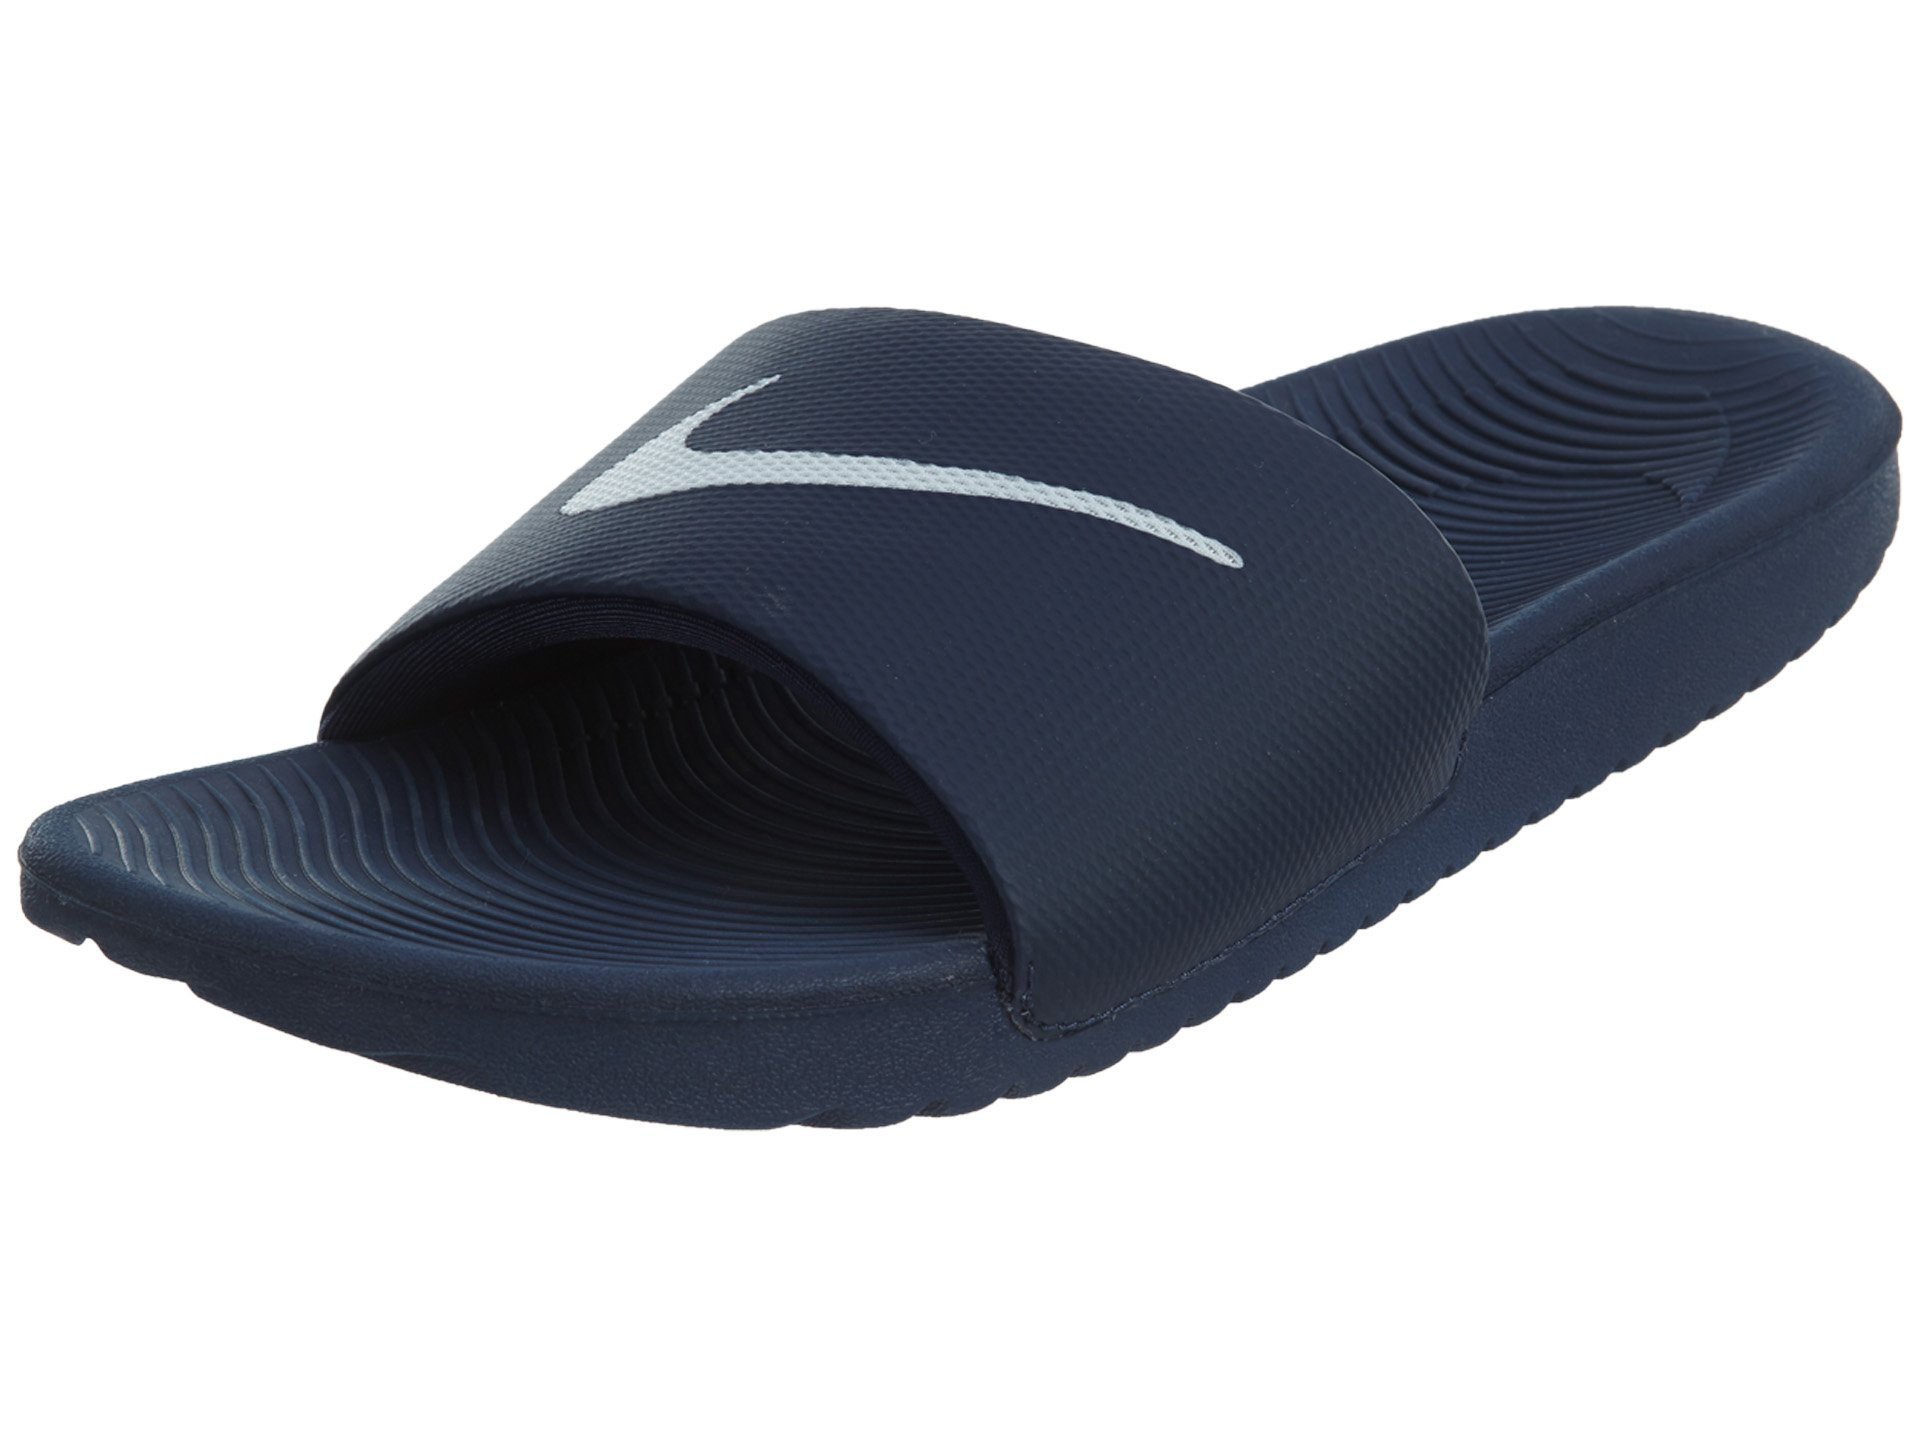 Nike Men's Kawa Slide Athletic Sandal, Midnight Navy/White, 9 D US by Nike